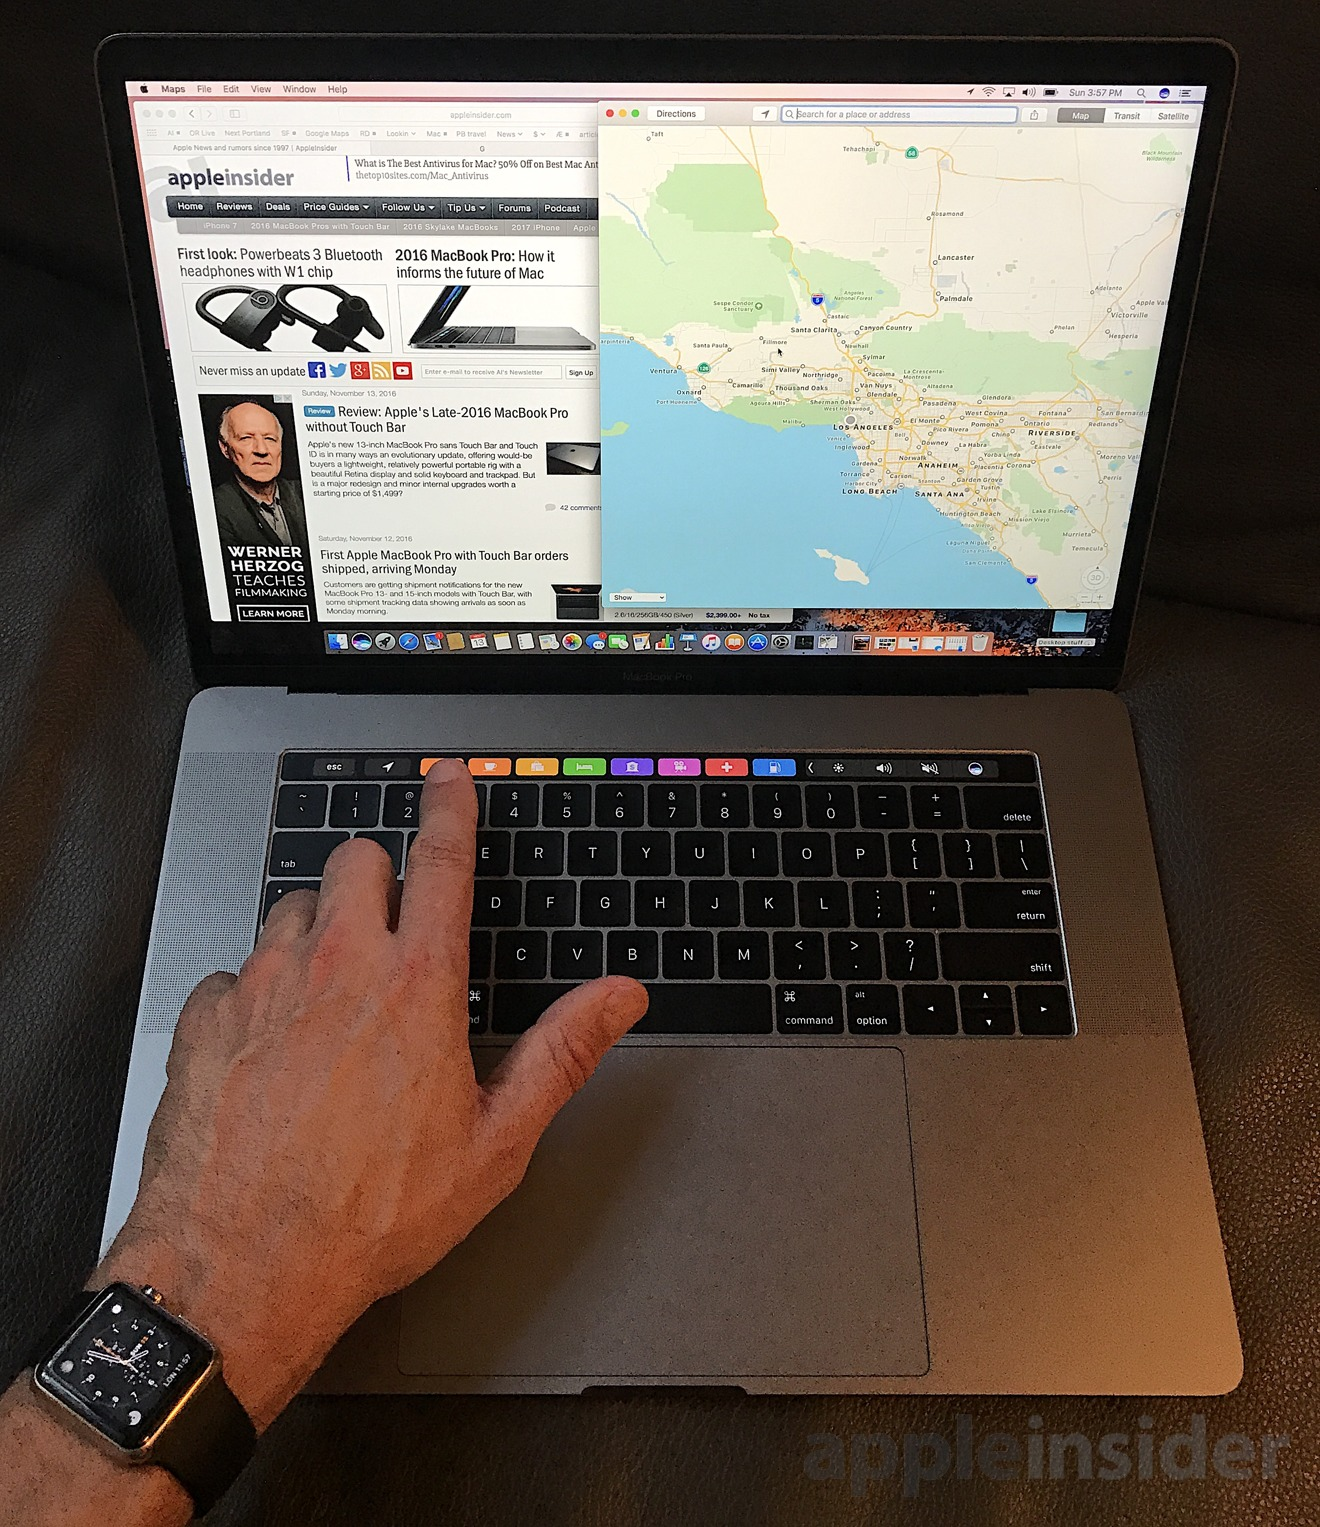 review apple 39 s late 2016 15 macbook pro with touch bar. Black Bedroom Furniture Sets. Home Design Ideas